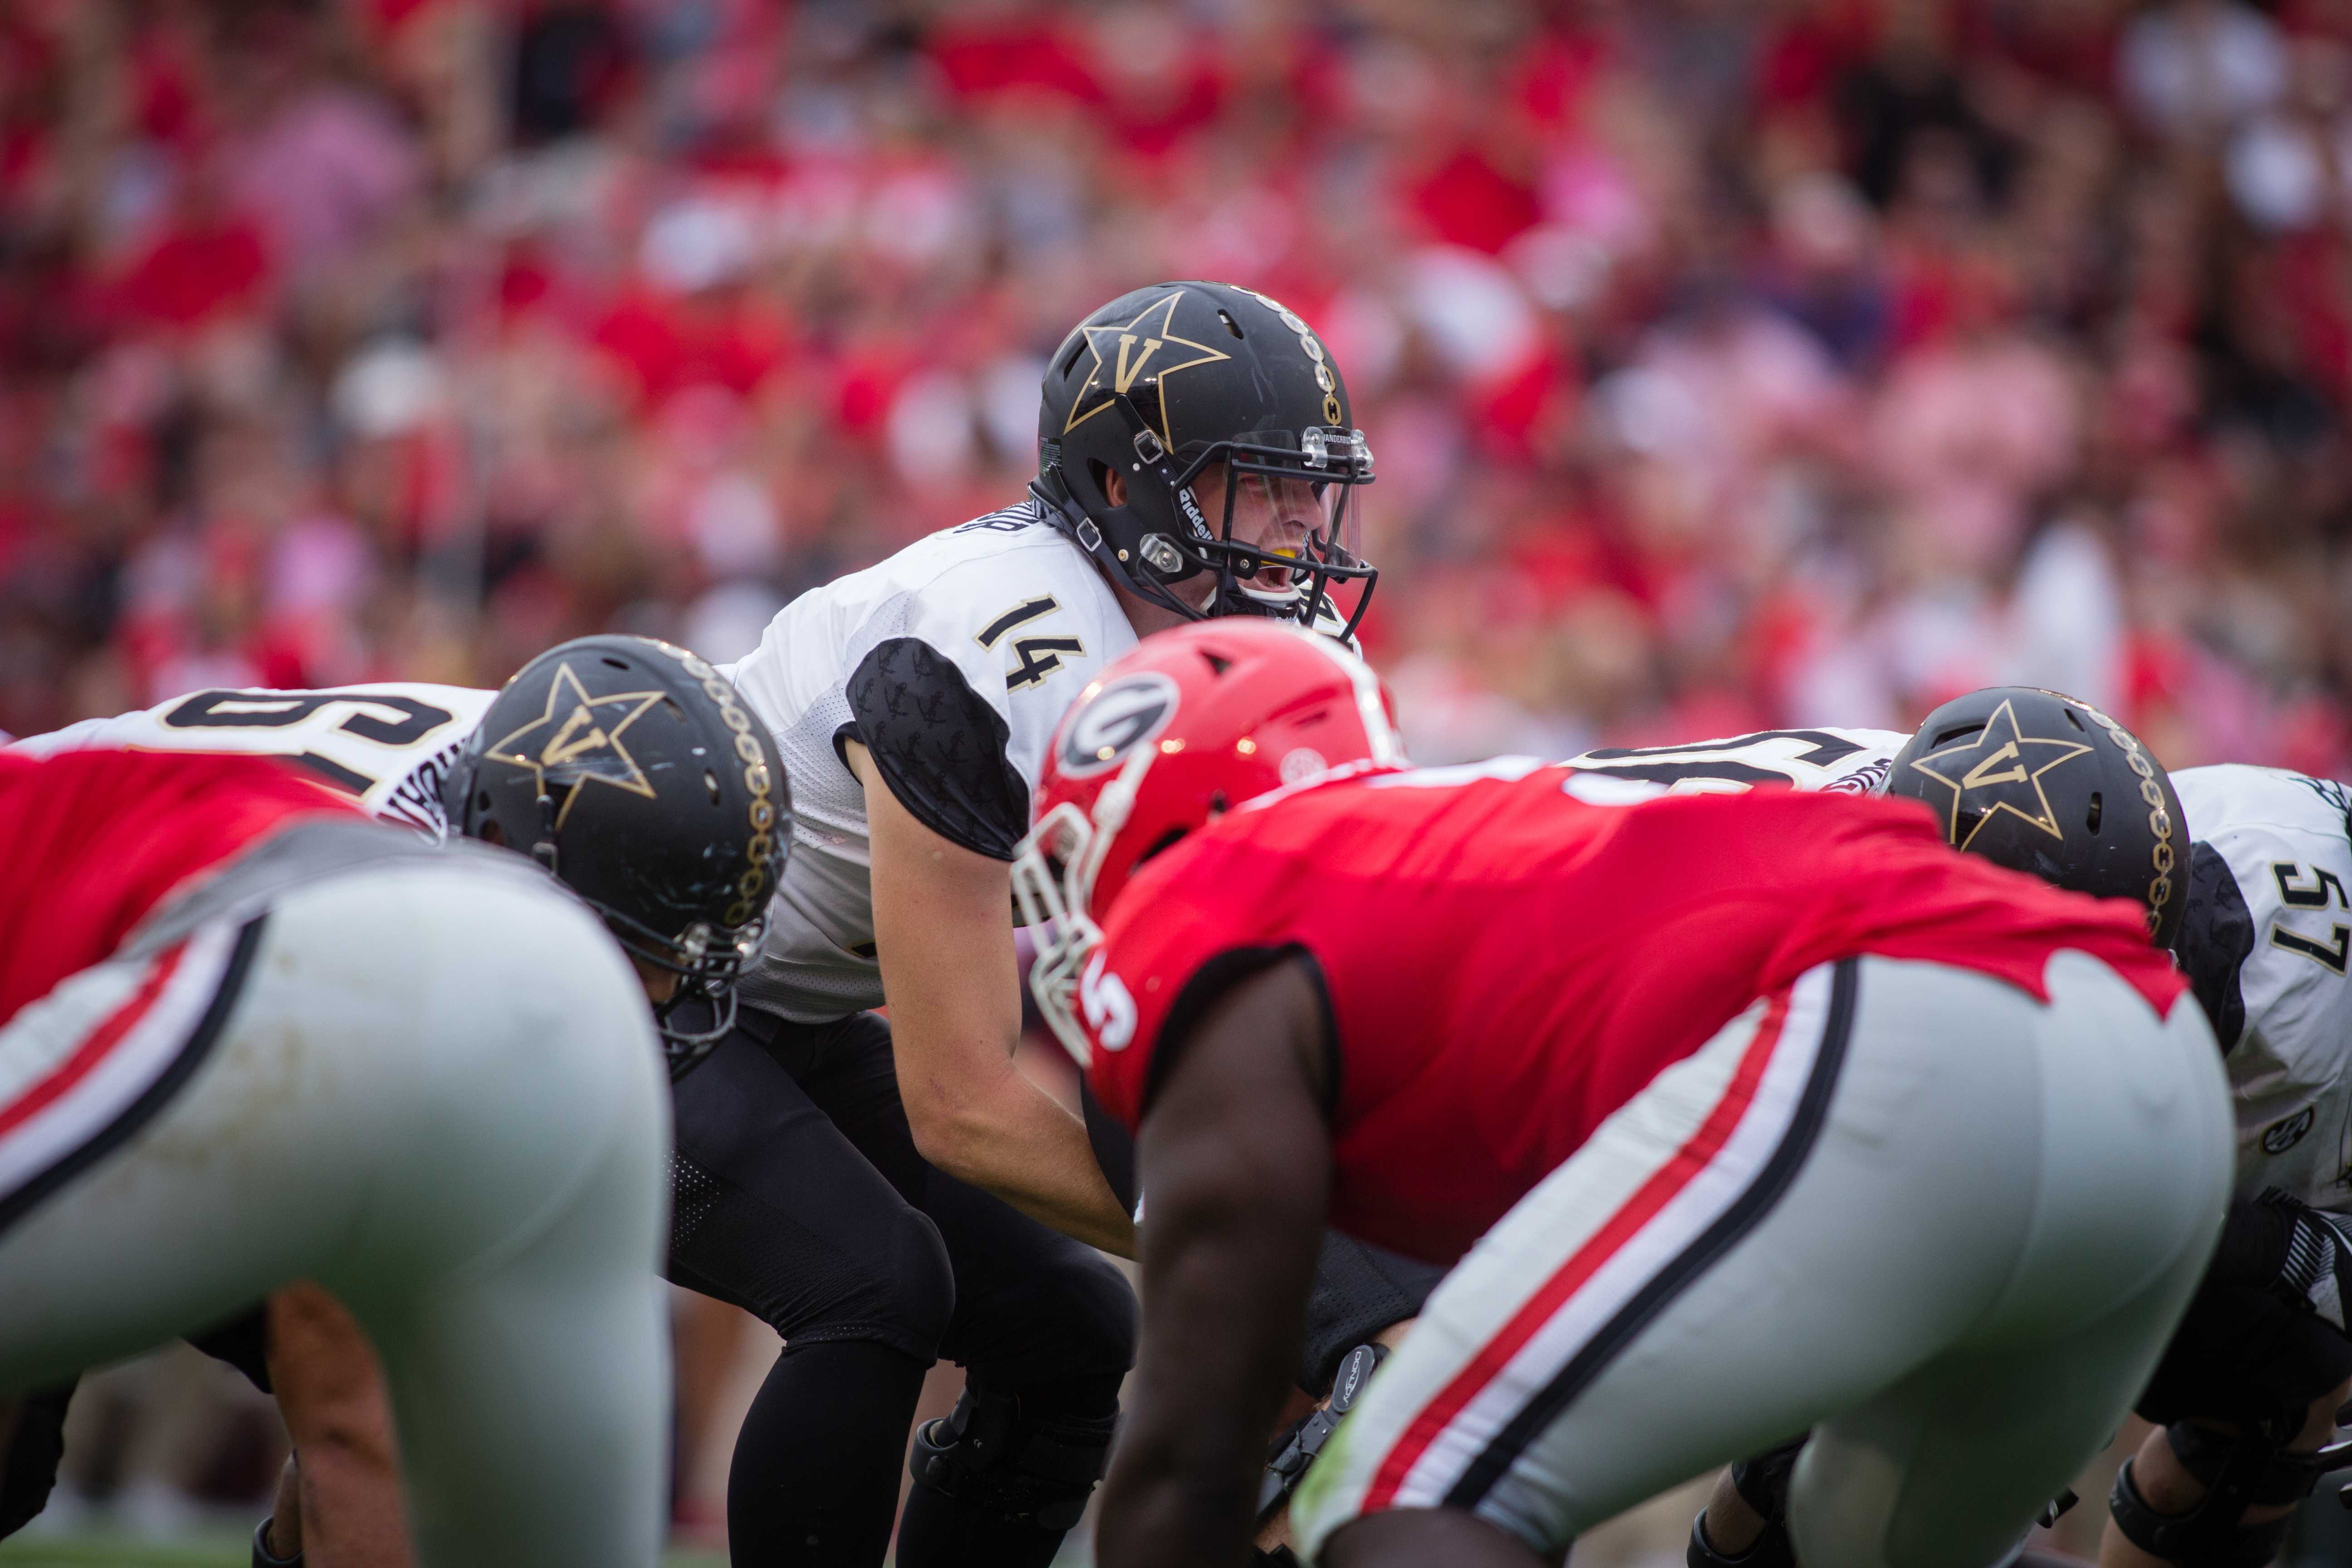 October 15th, 2016 – Kyle Shurmer on the line of scrimmage during the Commodores' 17-16 win against the University of Georgia in Sanford Stadium Saturday afternoon. Photo by Blake Dover.